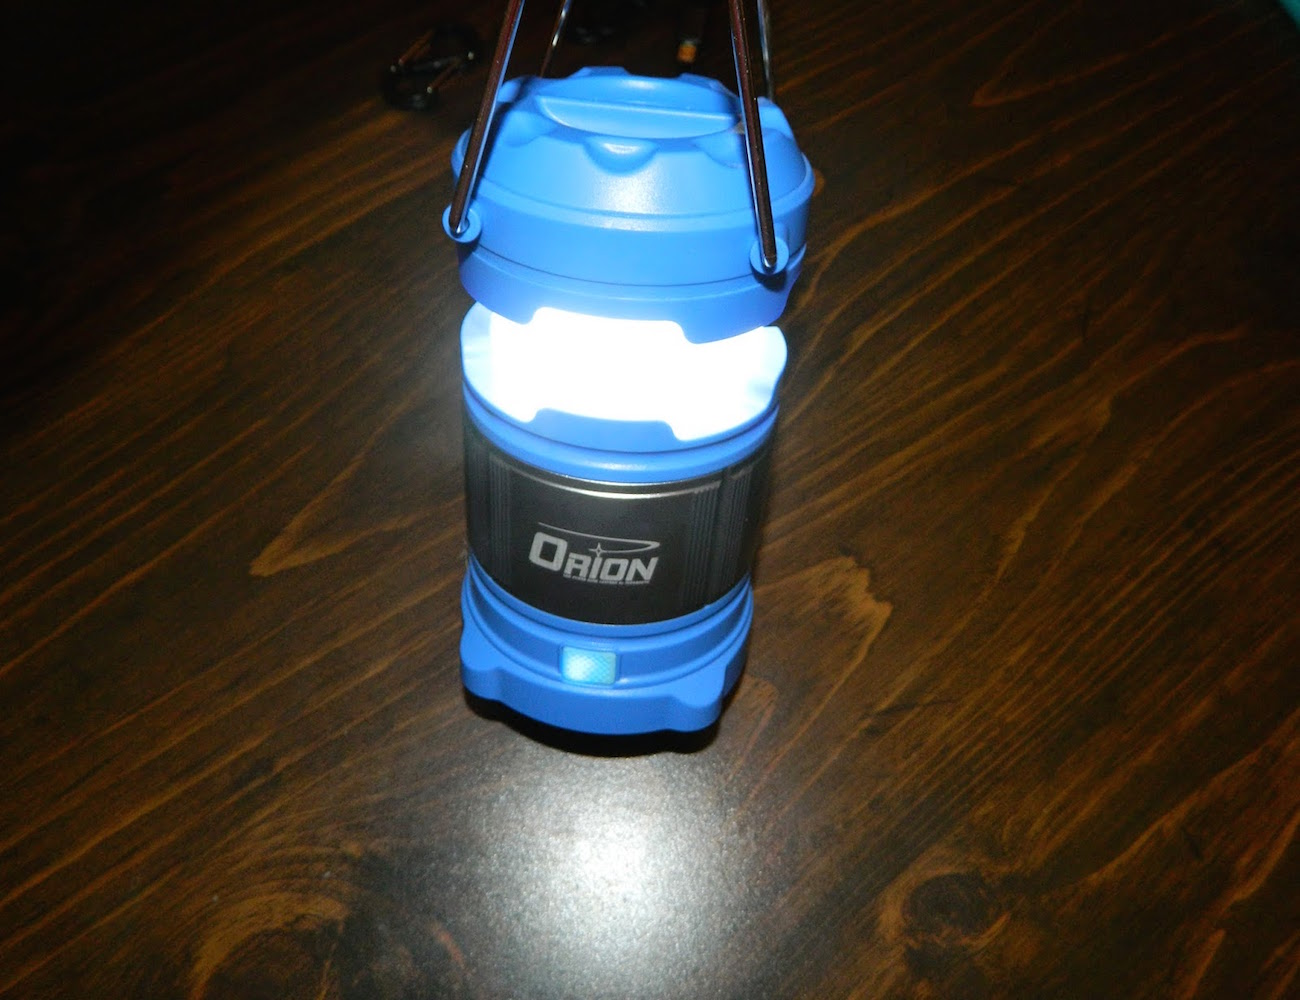 The Orion – Ultimate Survival LED Lantern and Power Bank by Supernova